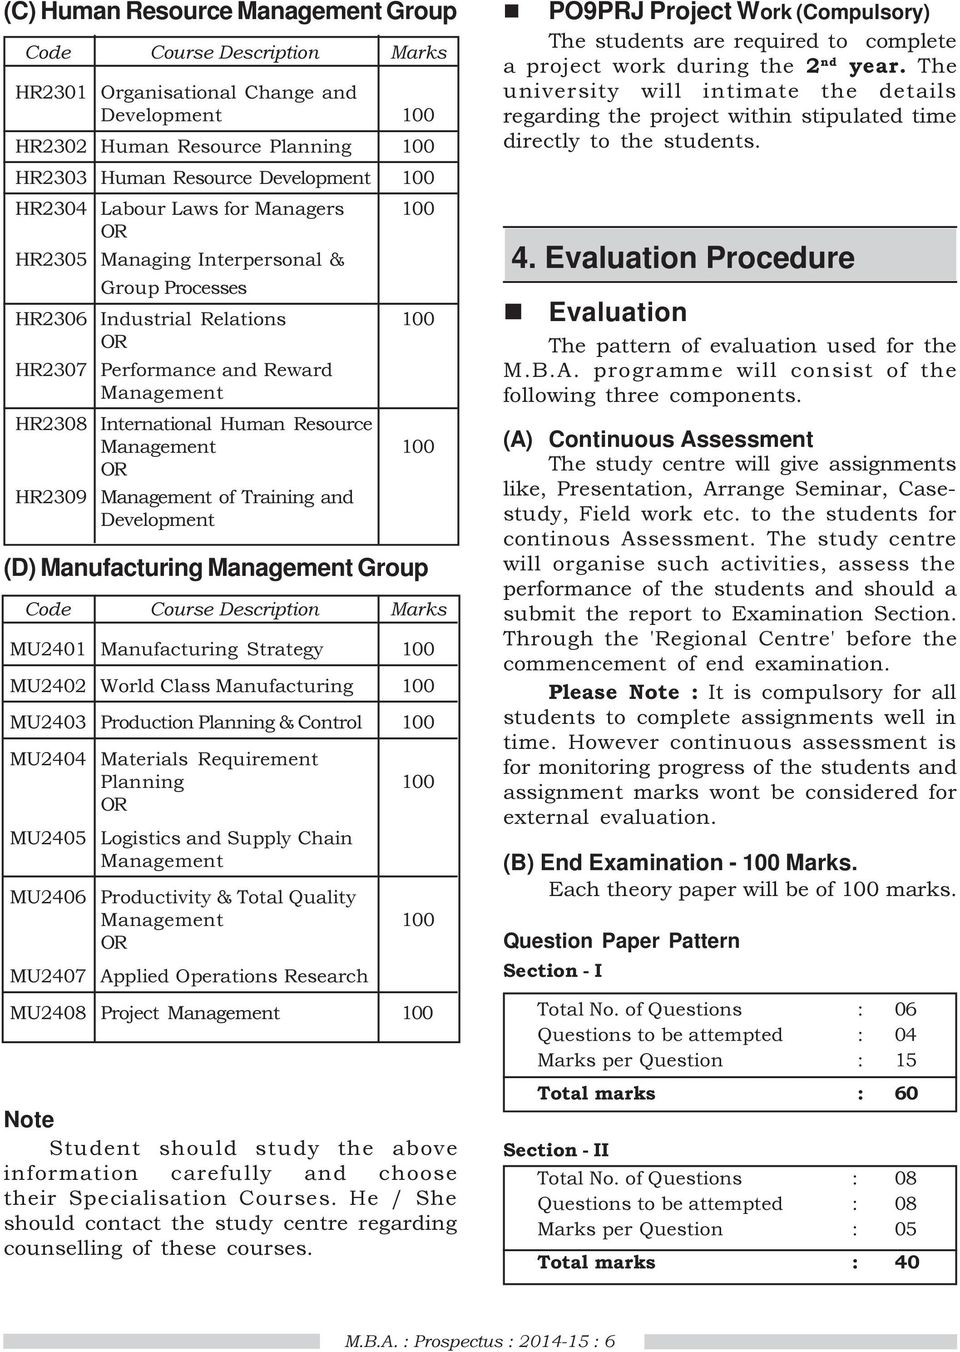 Master of Business Administration (M B A ) - P09 : Prospectus - PDF